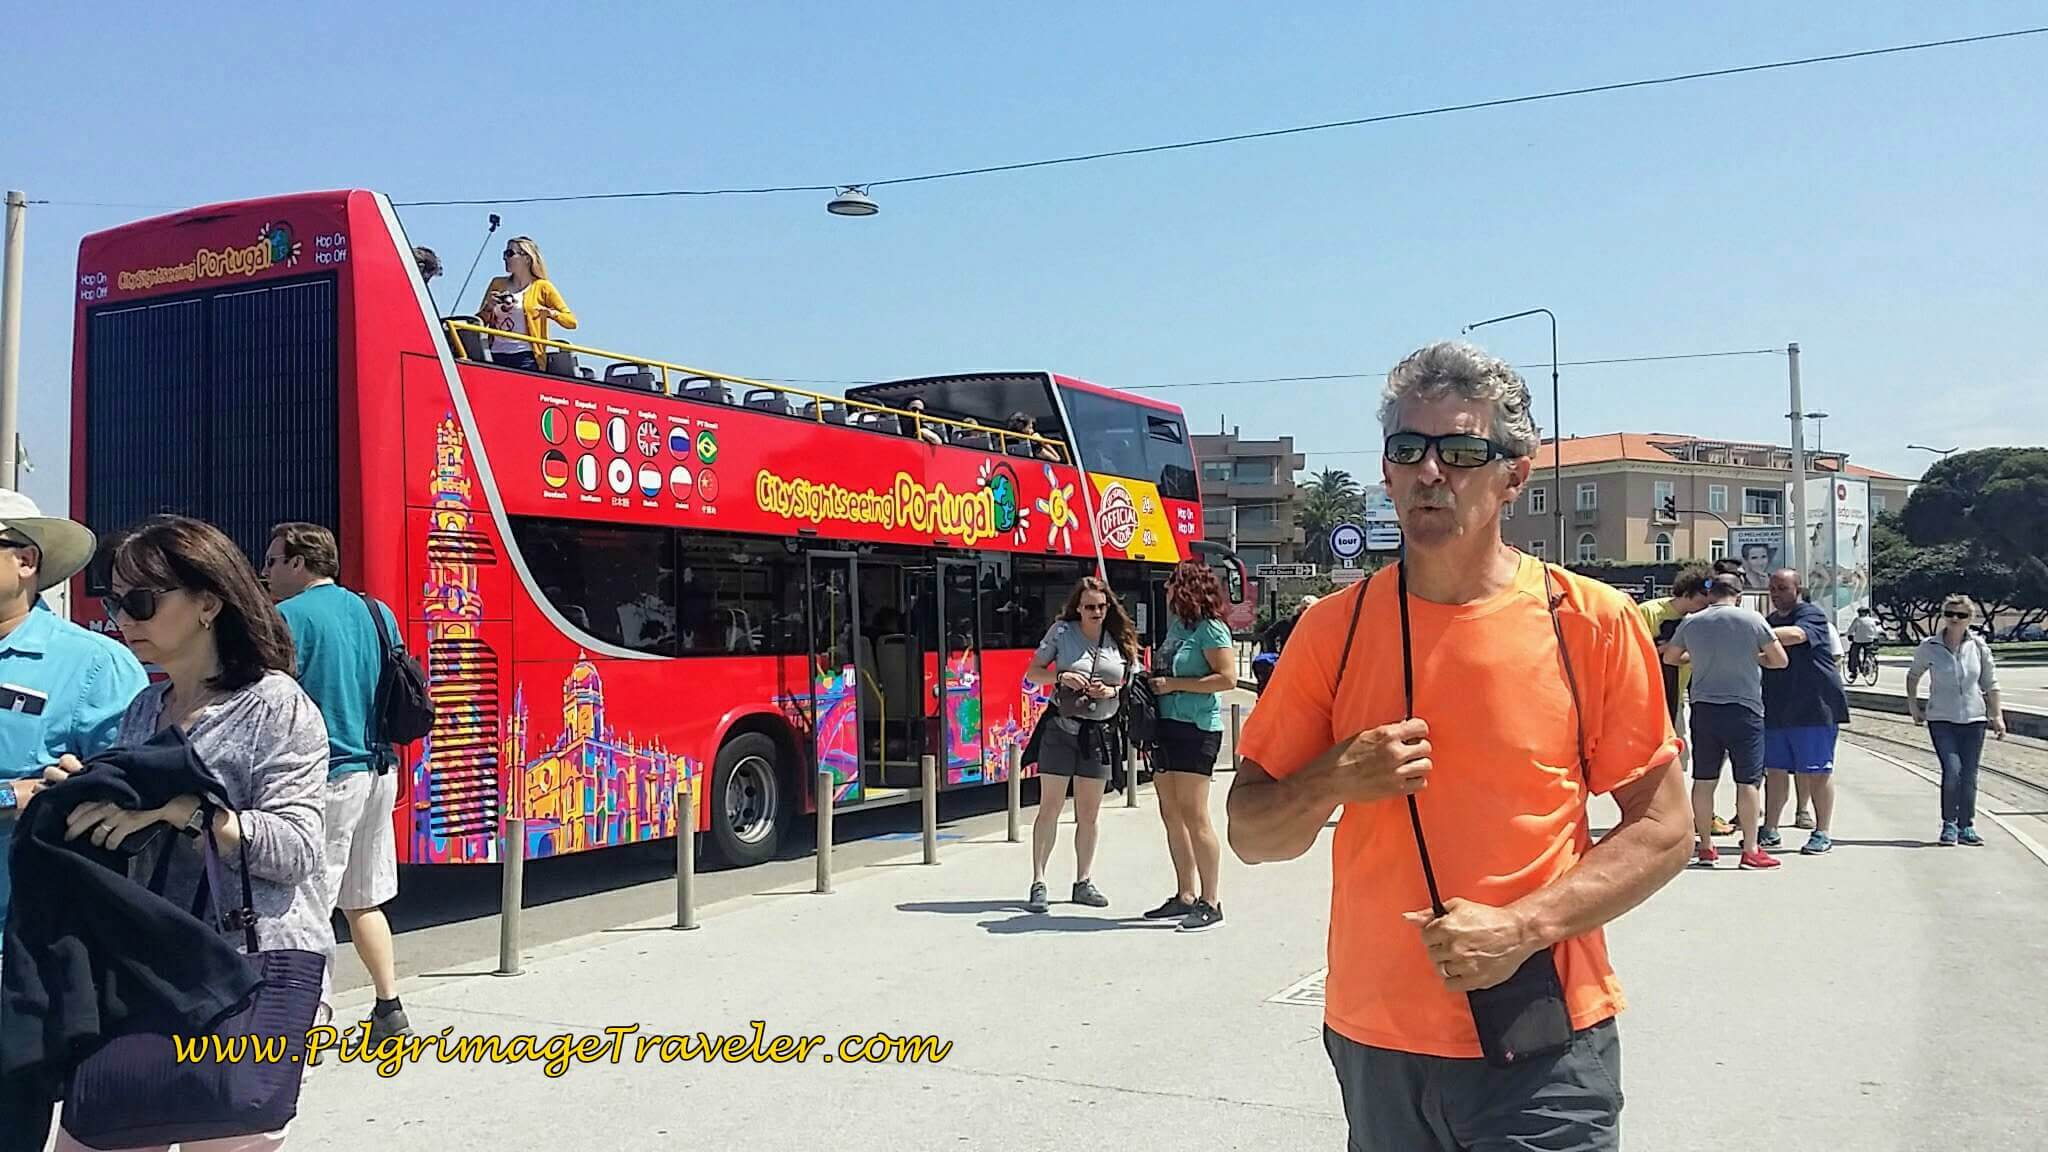 Rich and the Red Line Hop On Hop Off Tourist Bus in Porto, Portugal